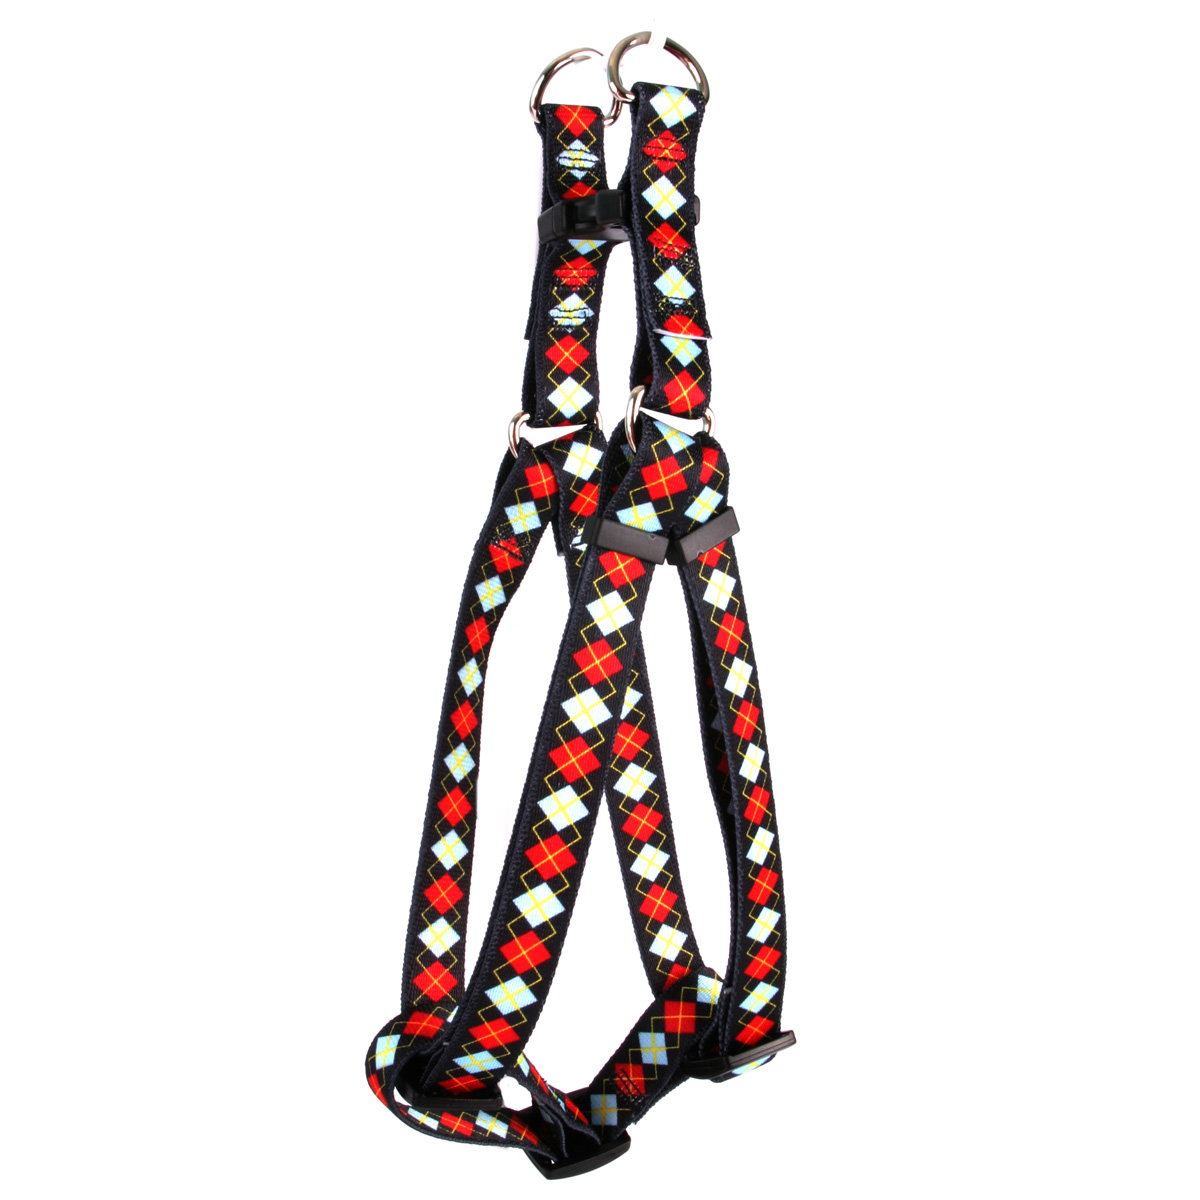 Red Argyle Step-In Harness